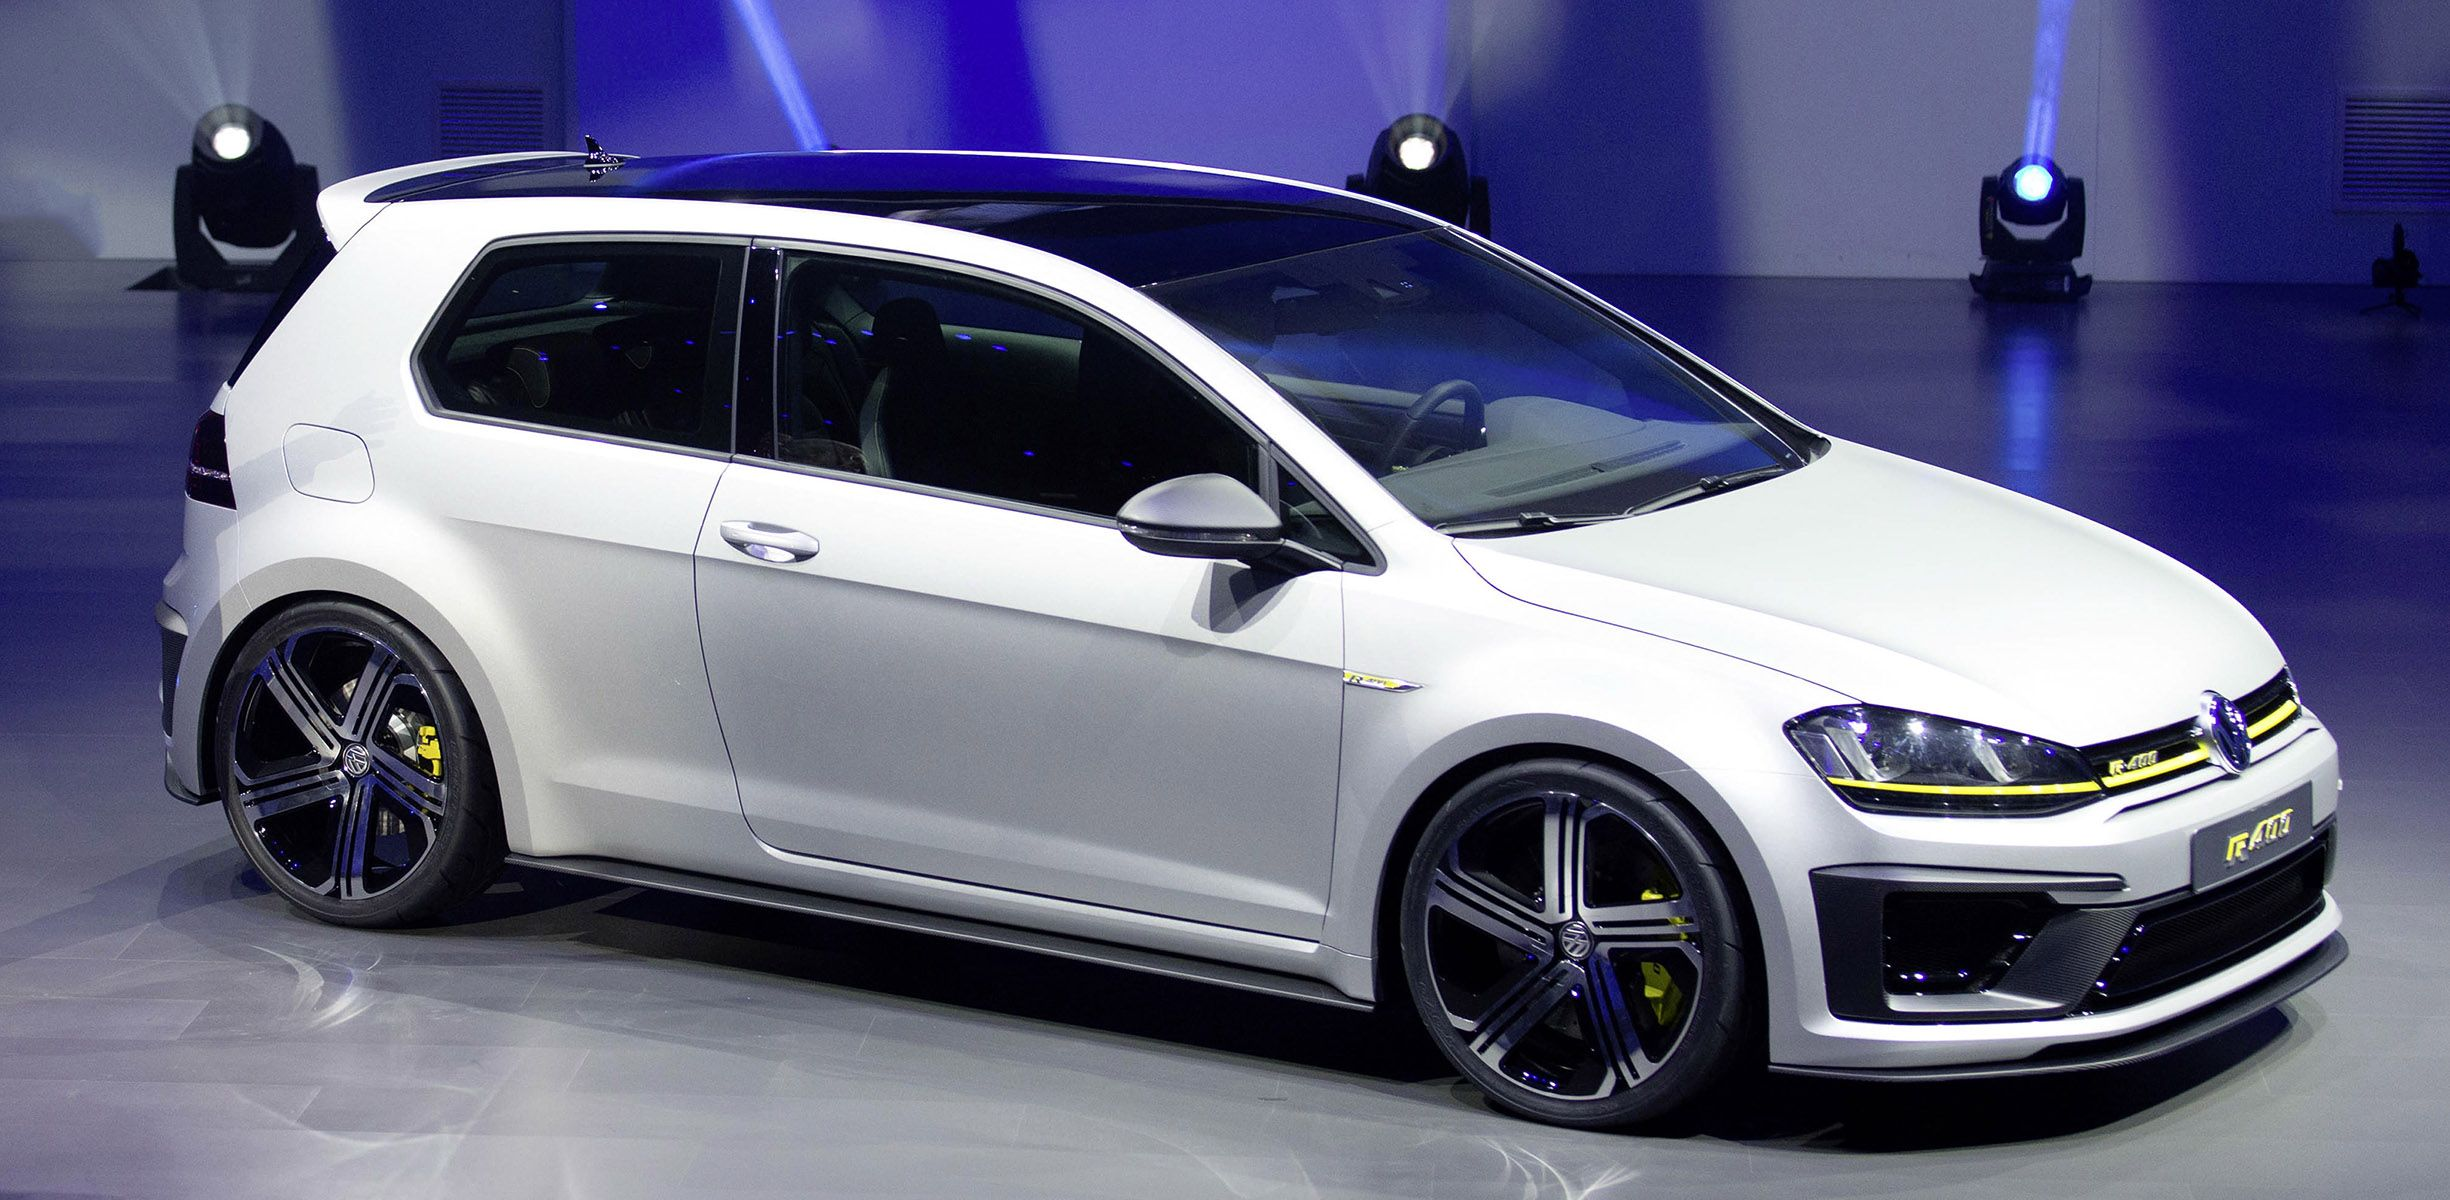 2017 volkswagen golf r400 release date and price http www carreleasereviews